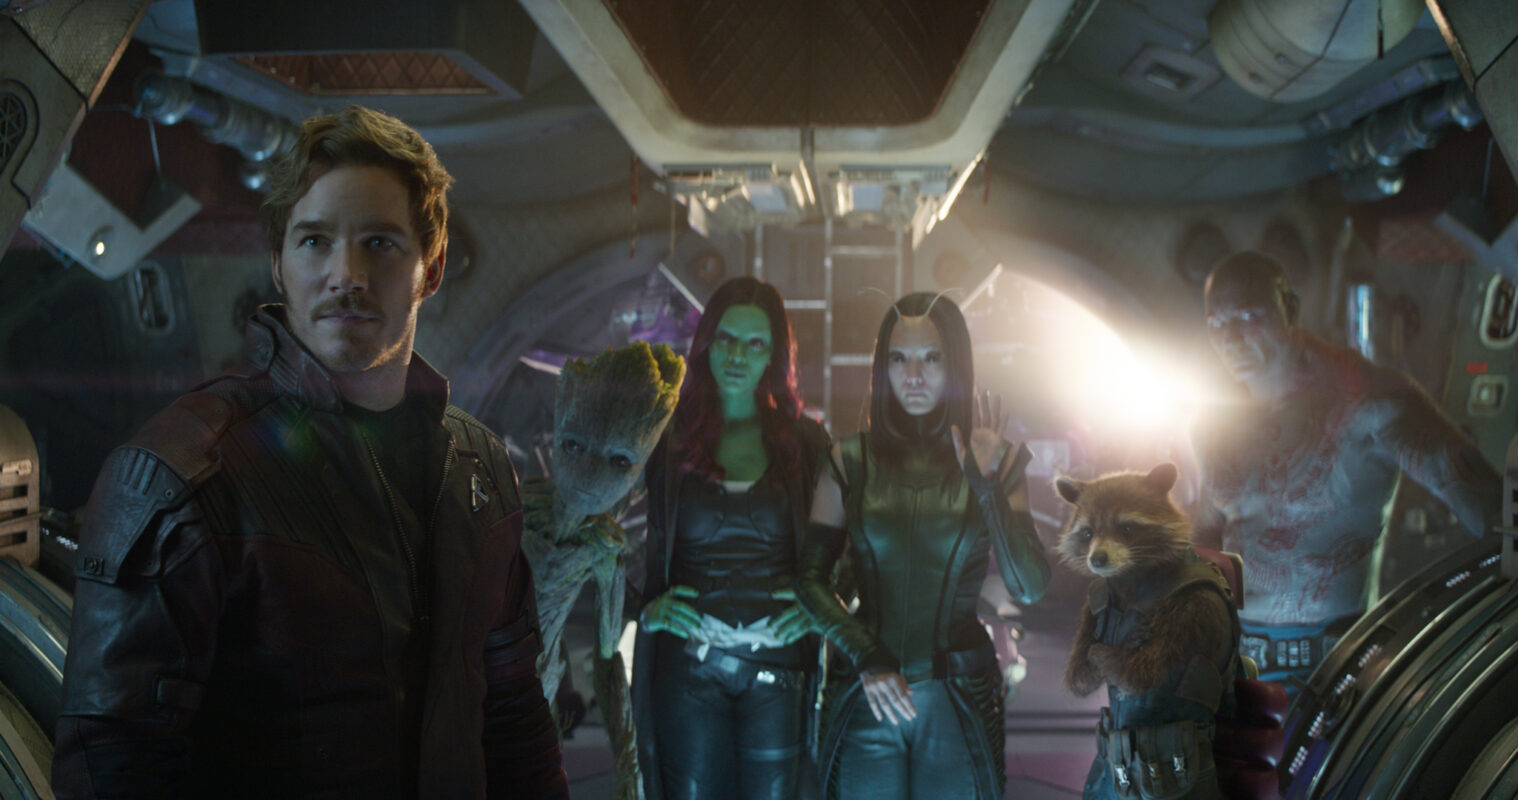 Guardians of the Galaxy from Avengers: Infinity War